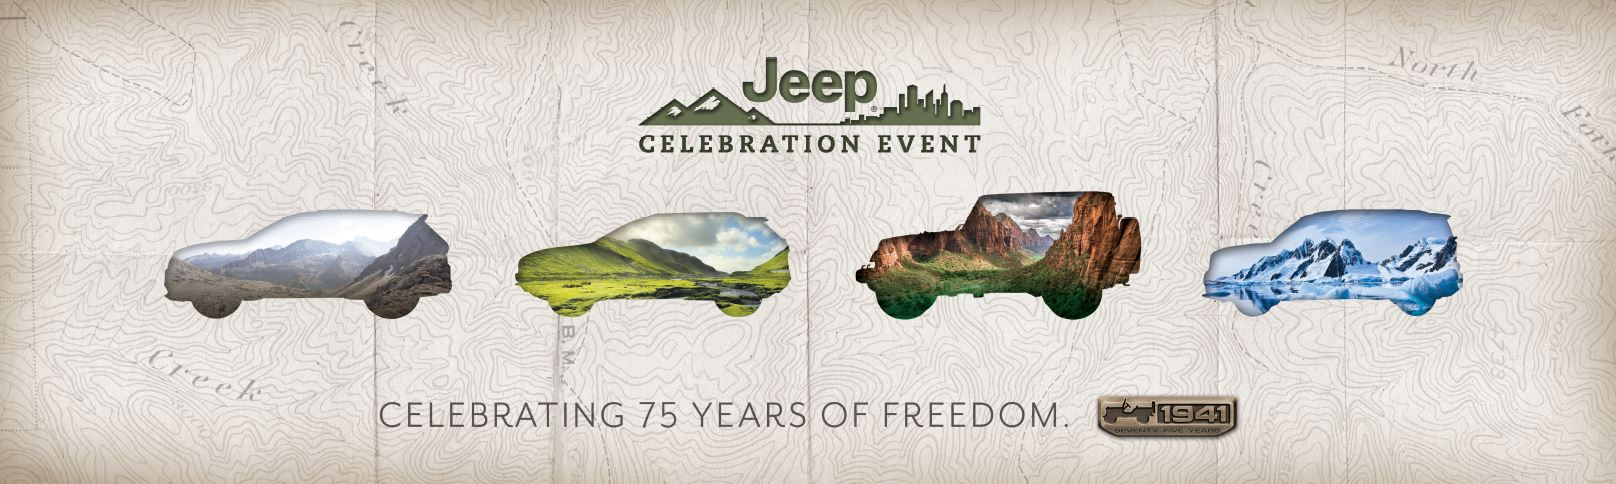 Jeep Celebration Event in Weslaco, TX